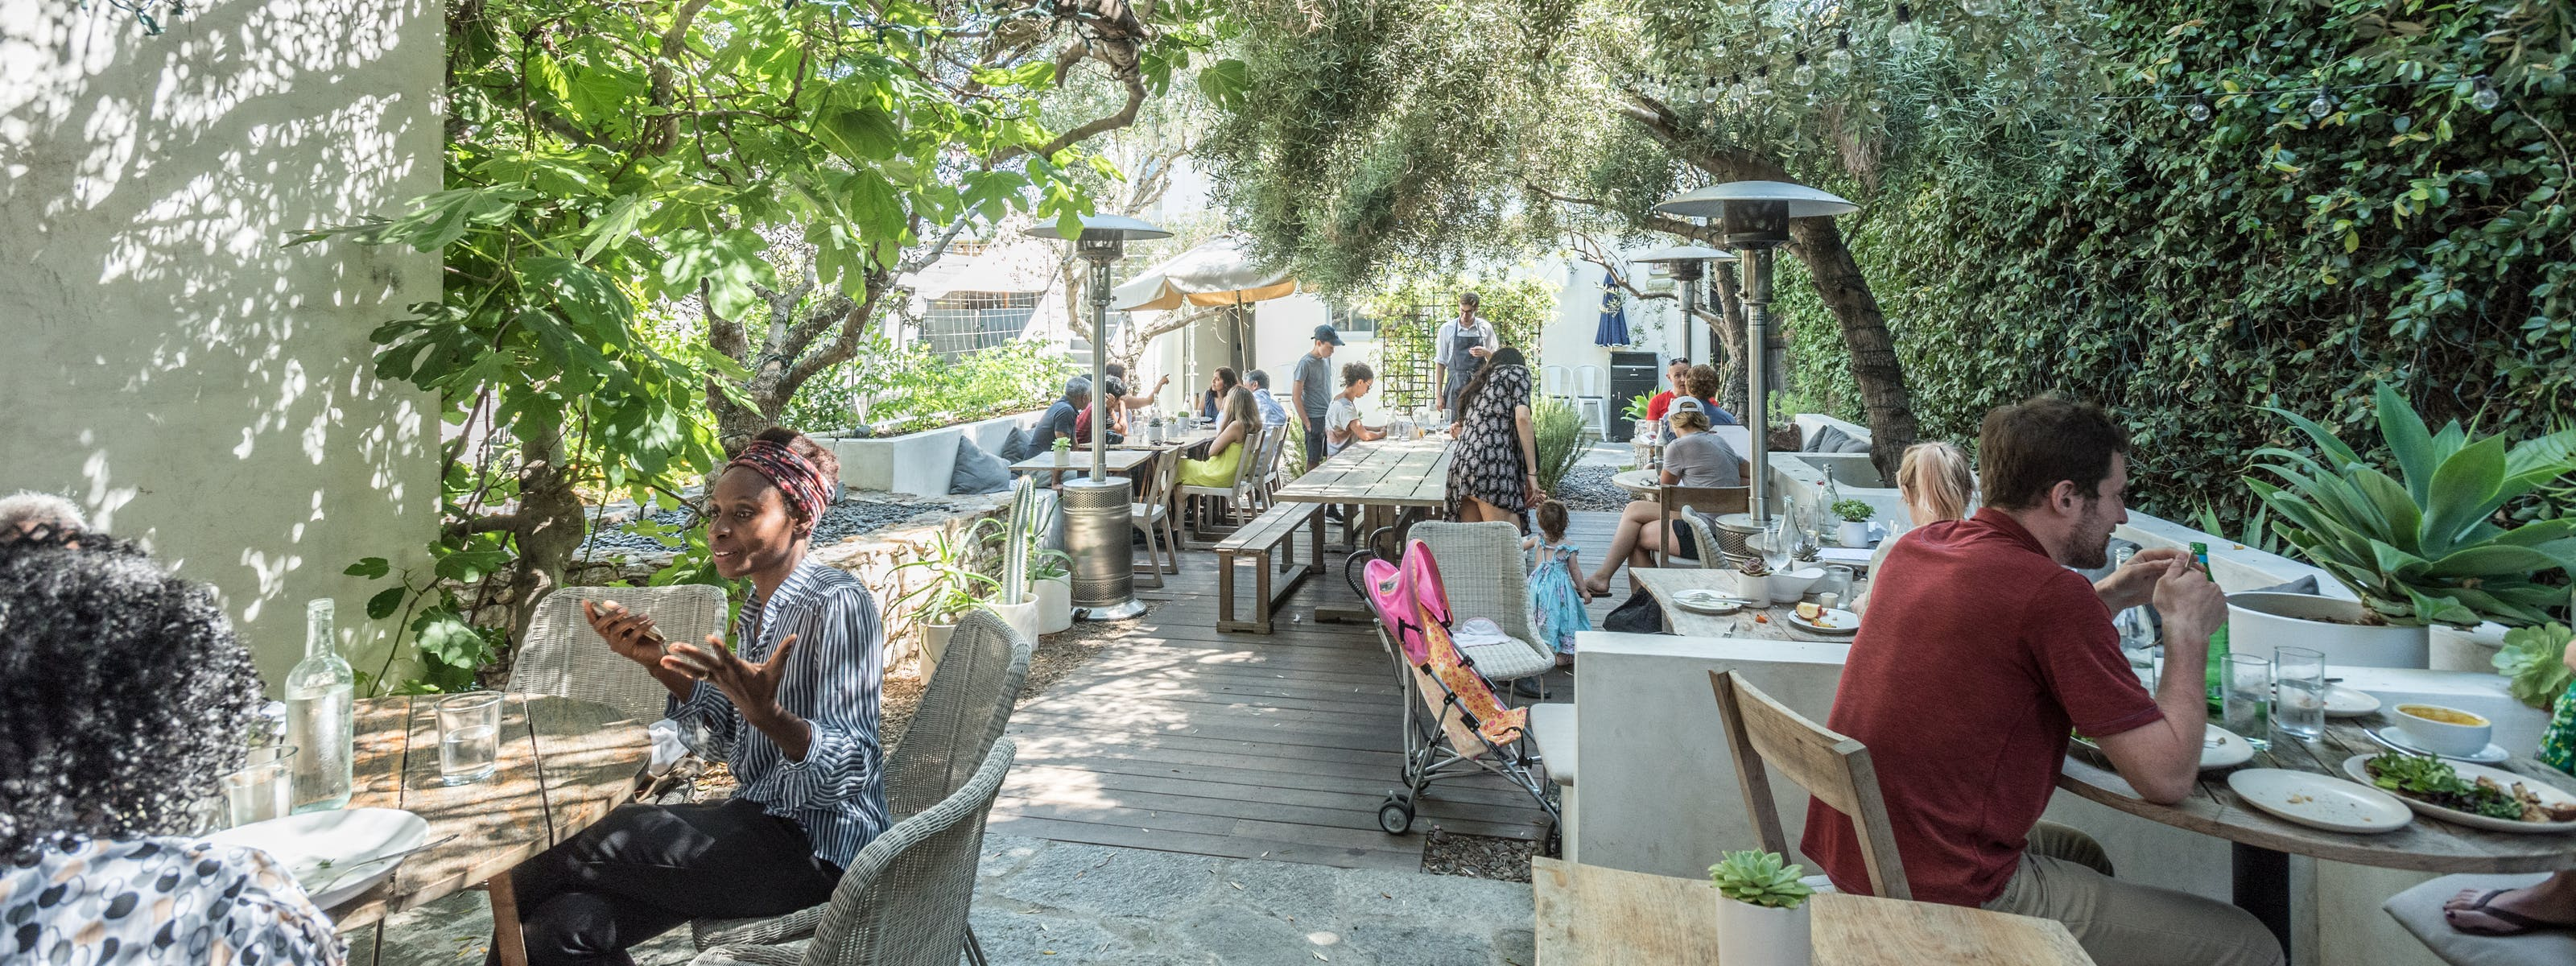 Where To Eat Outside In Venice Today - Venice - Los Angeles - The Infatuation